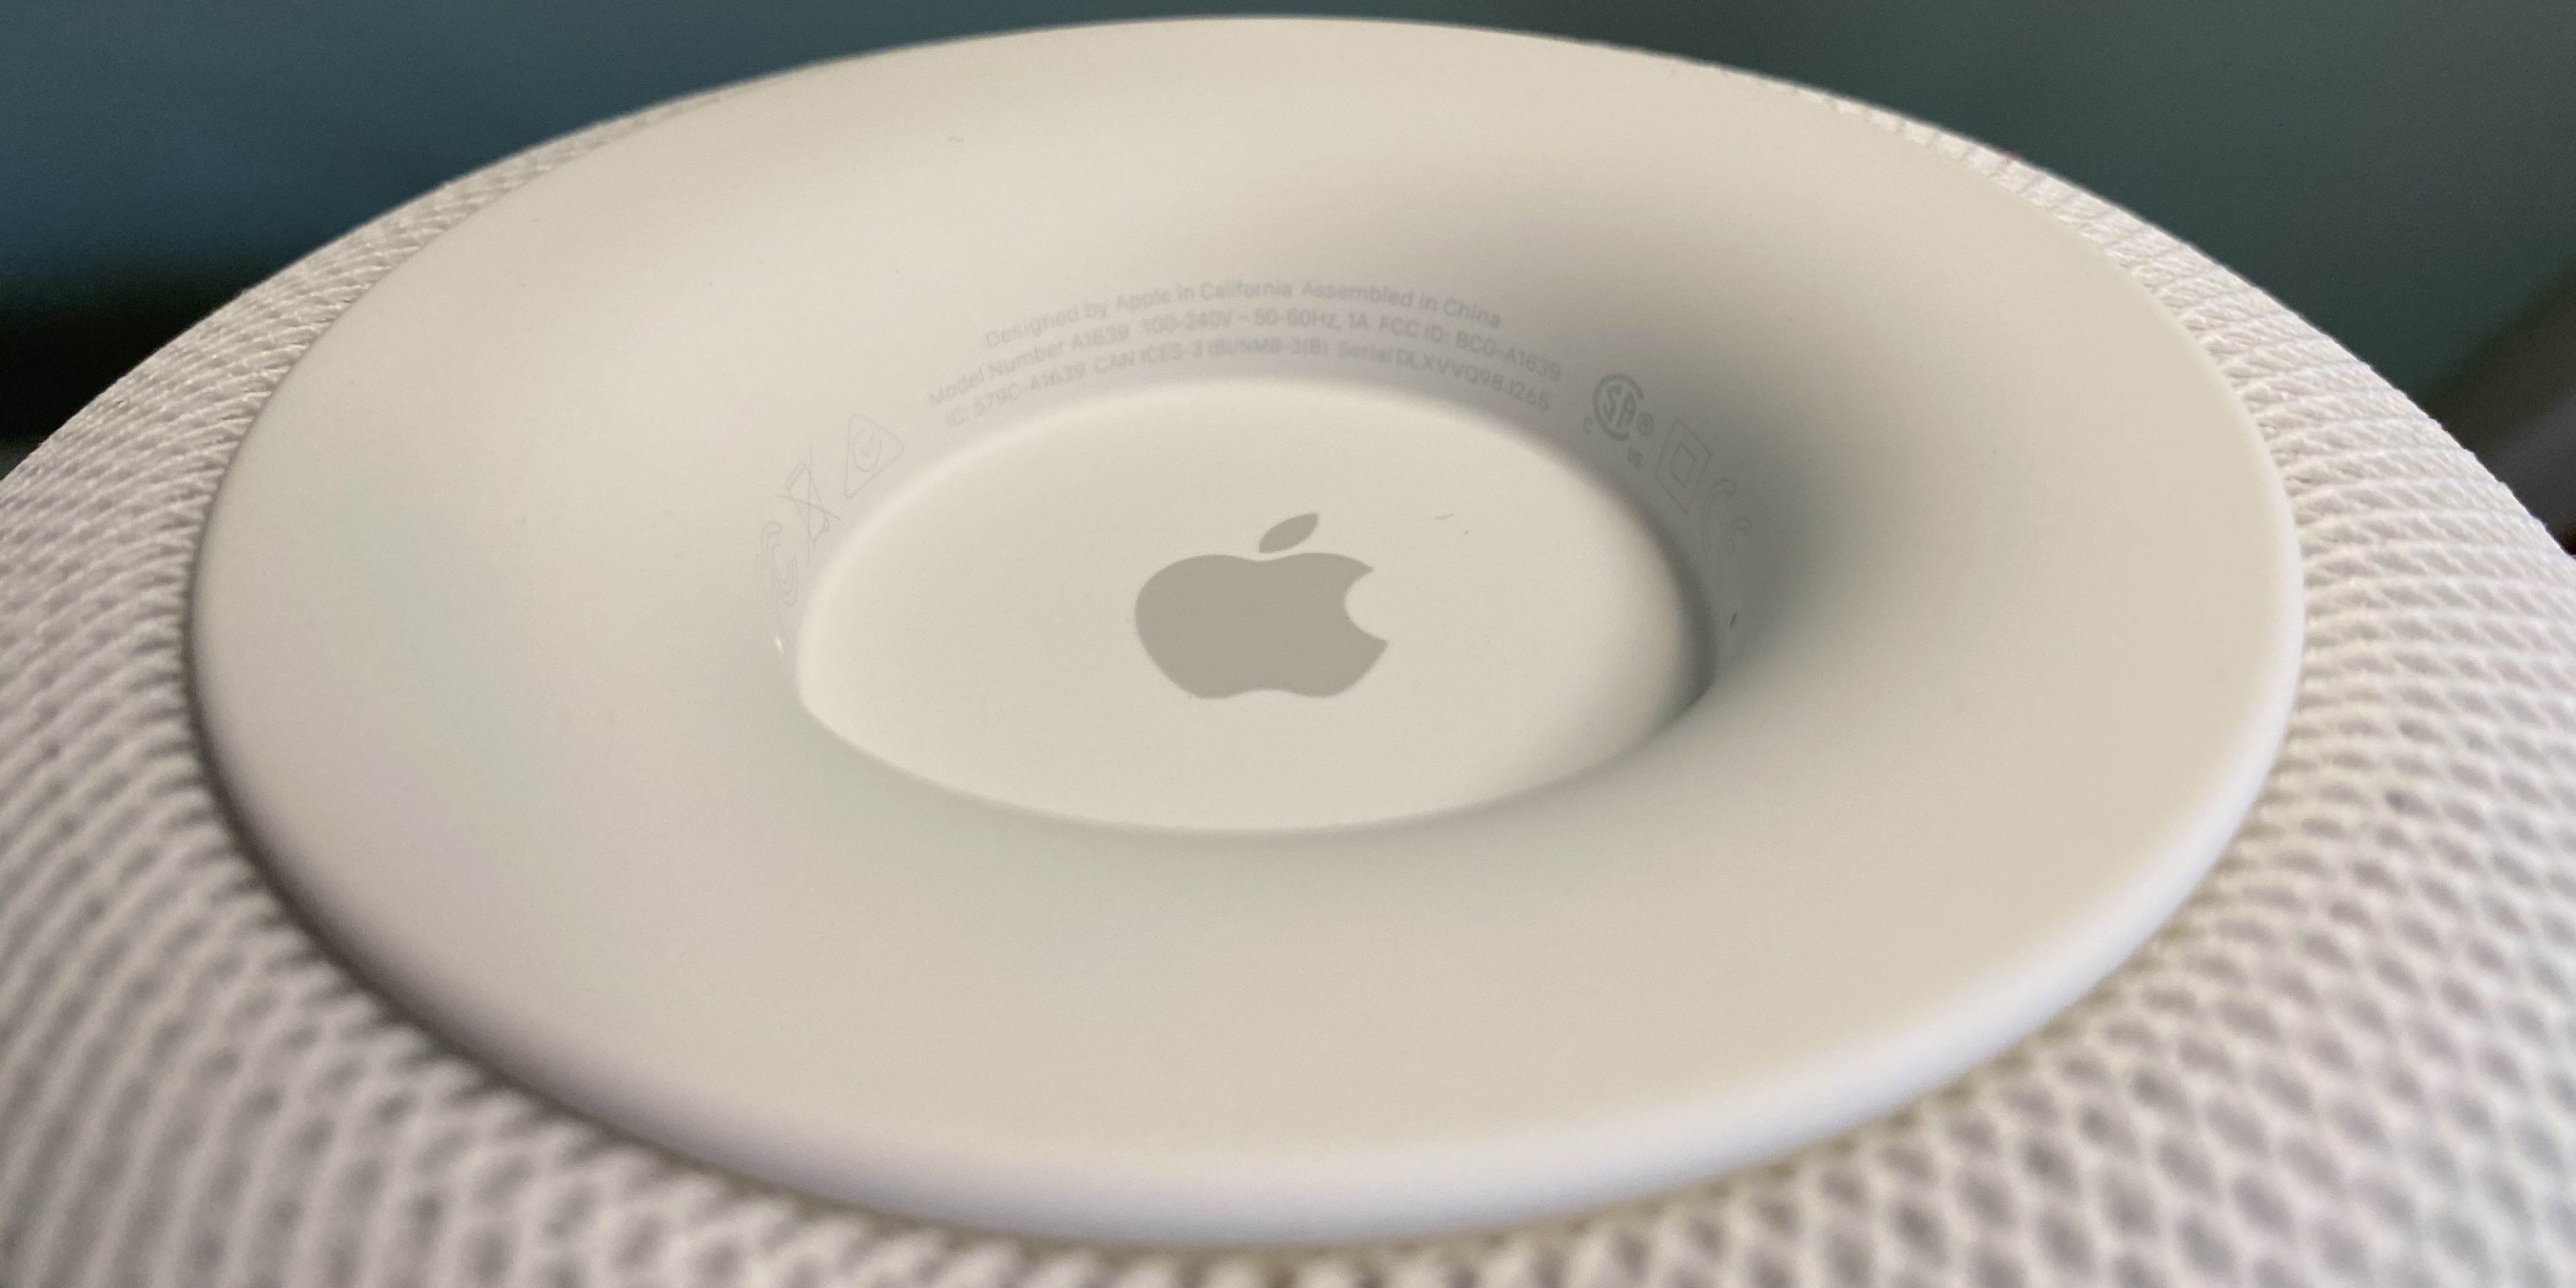 How to find serial number HomePod